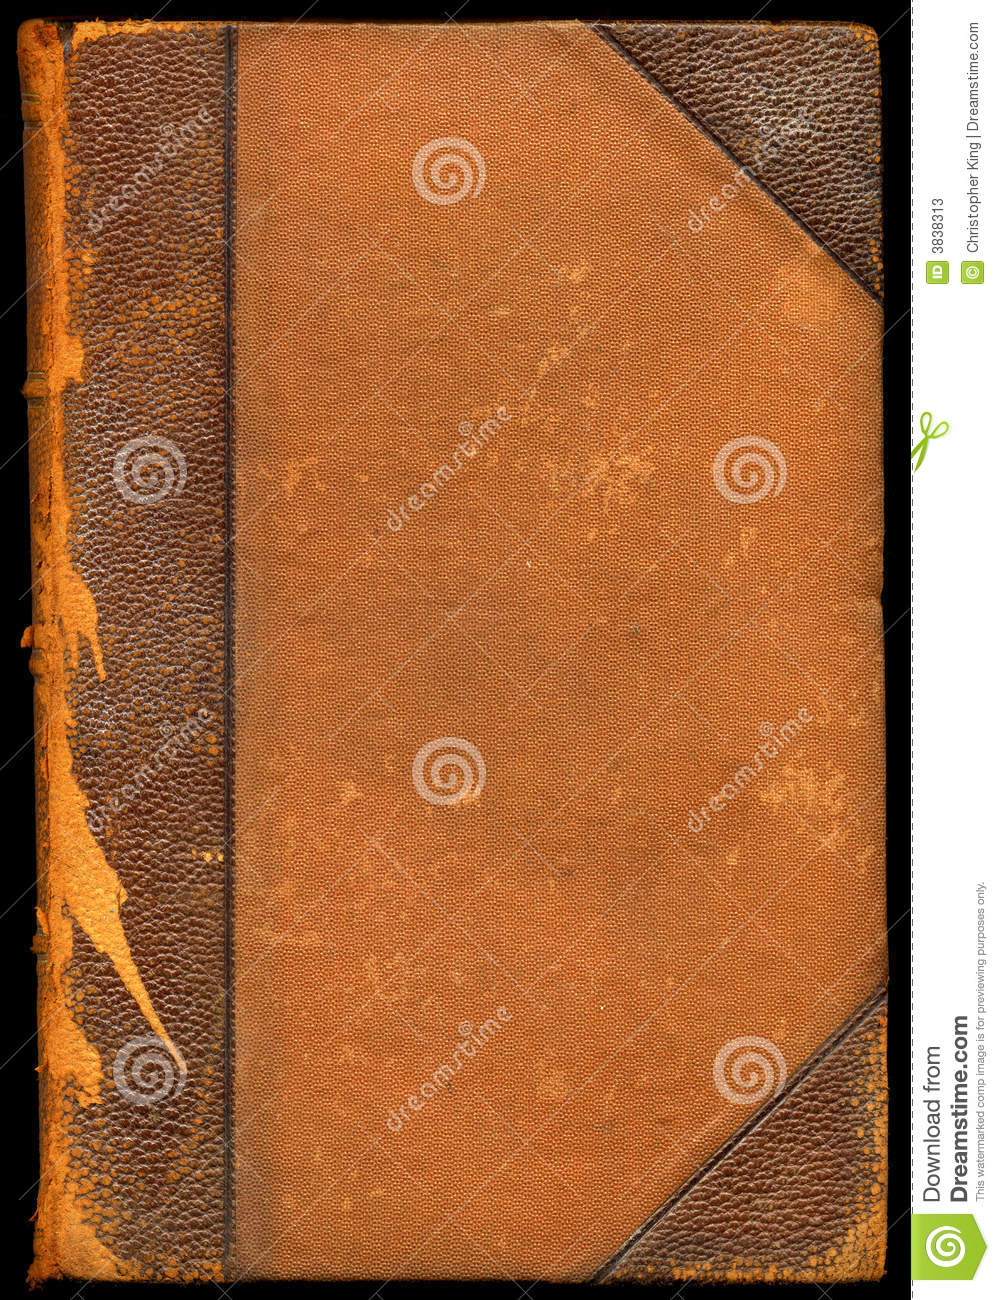 Old Brown Book Cover : Vintage brown leather book stock photography